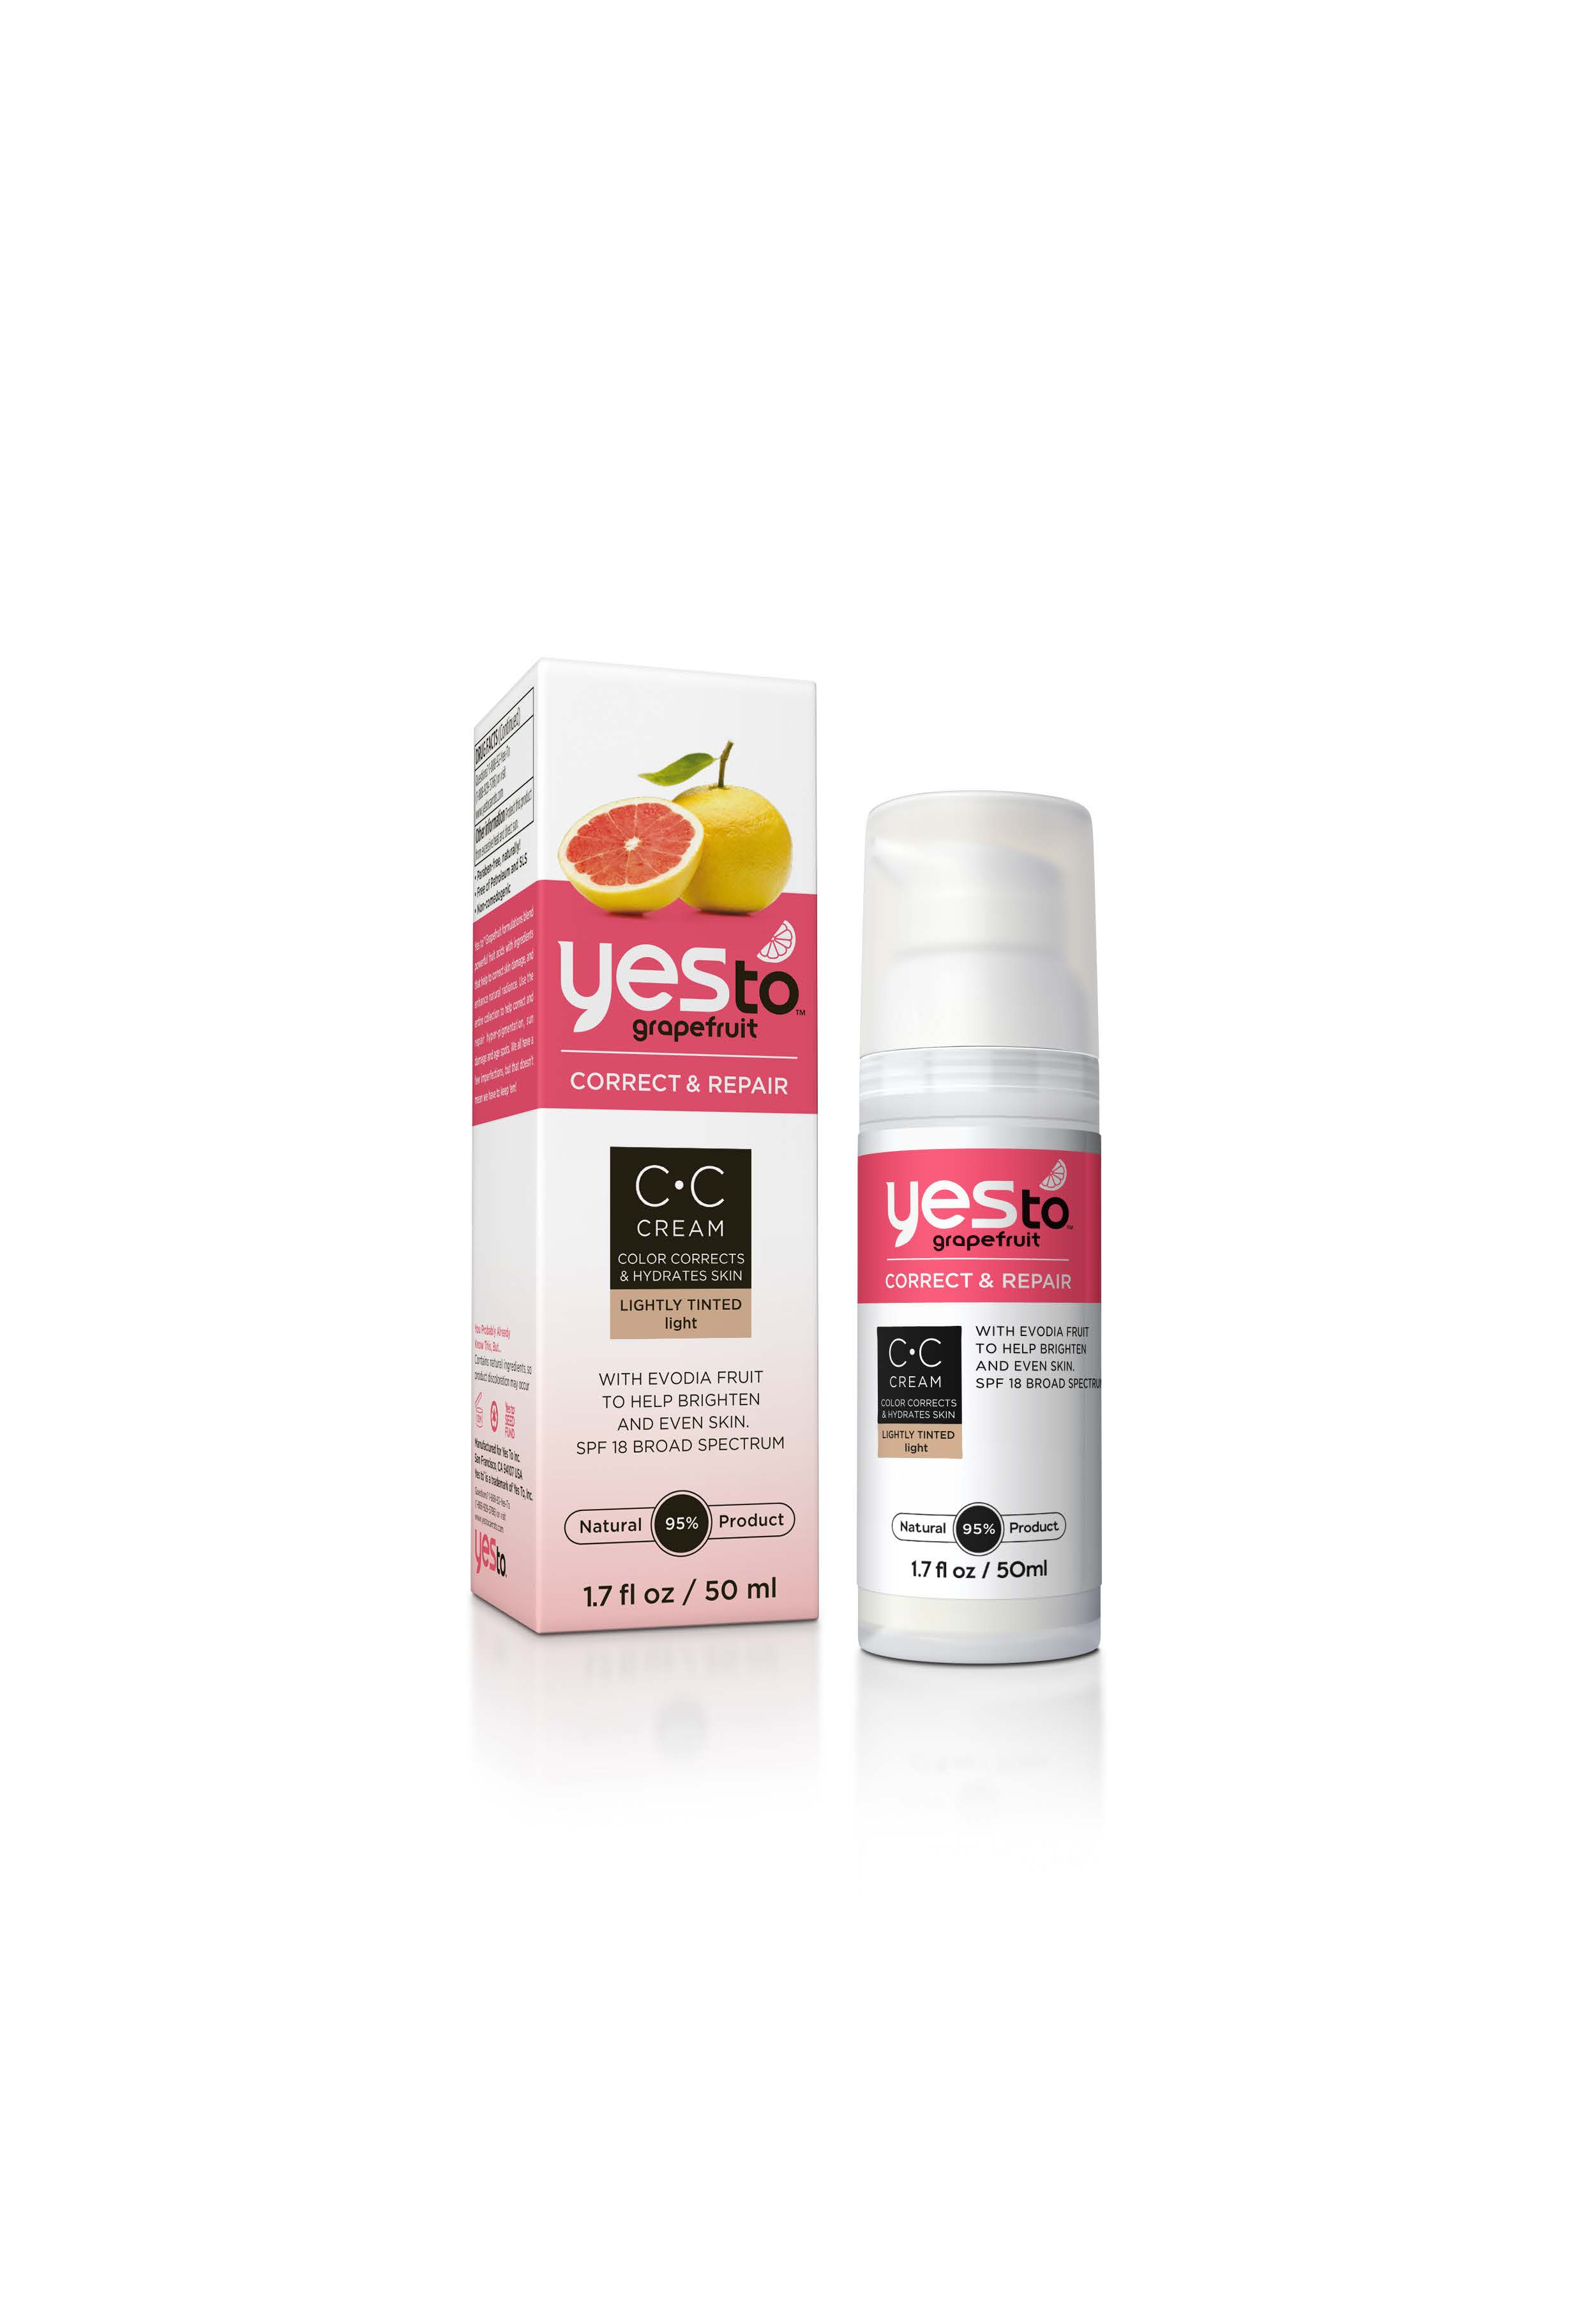 An Affordable CC Cream with all of the benefits by Yes to Carrots